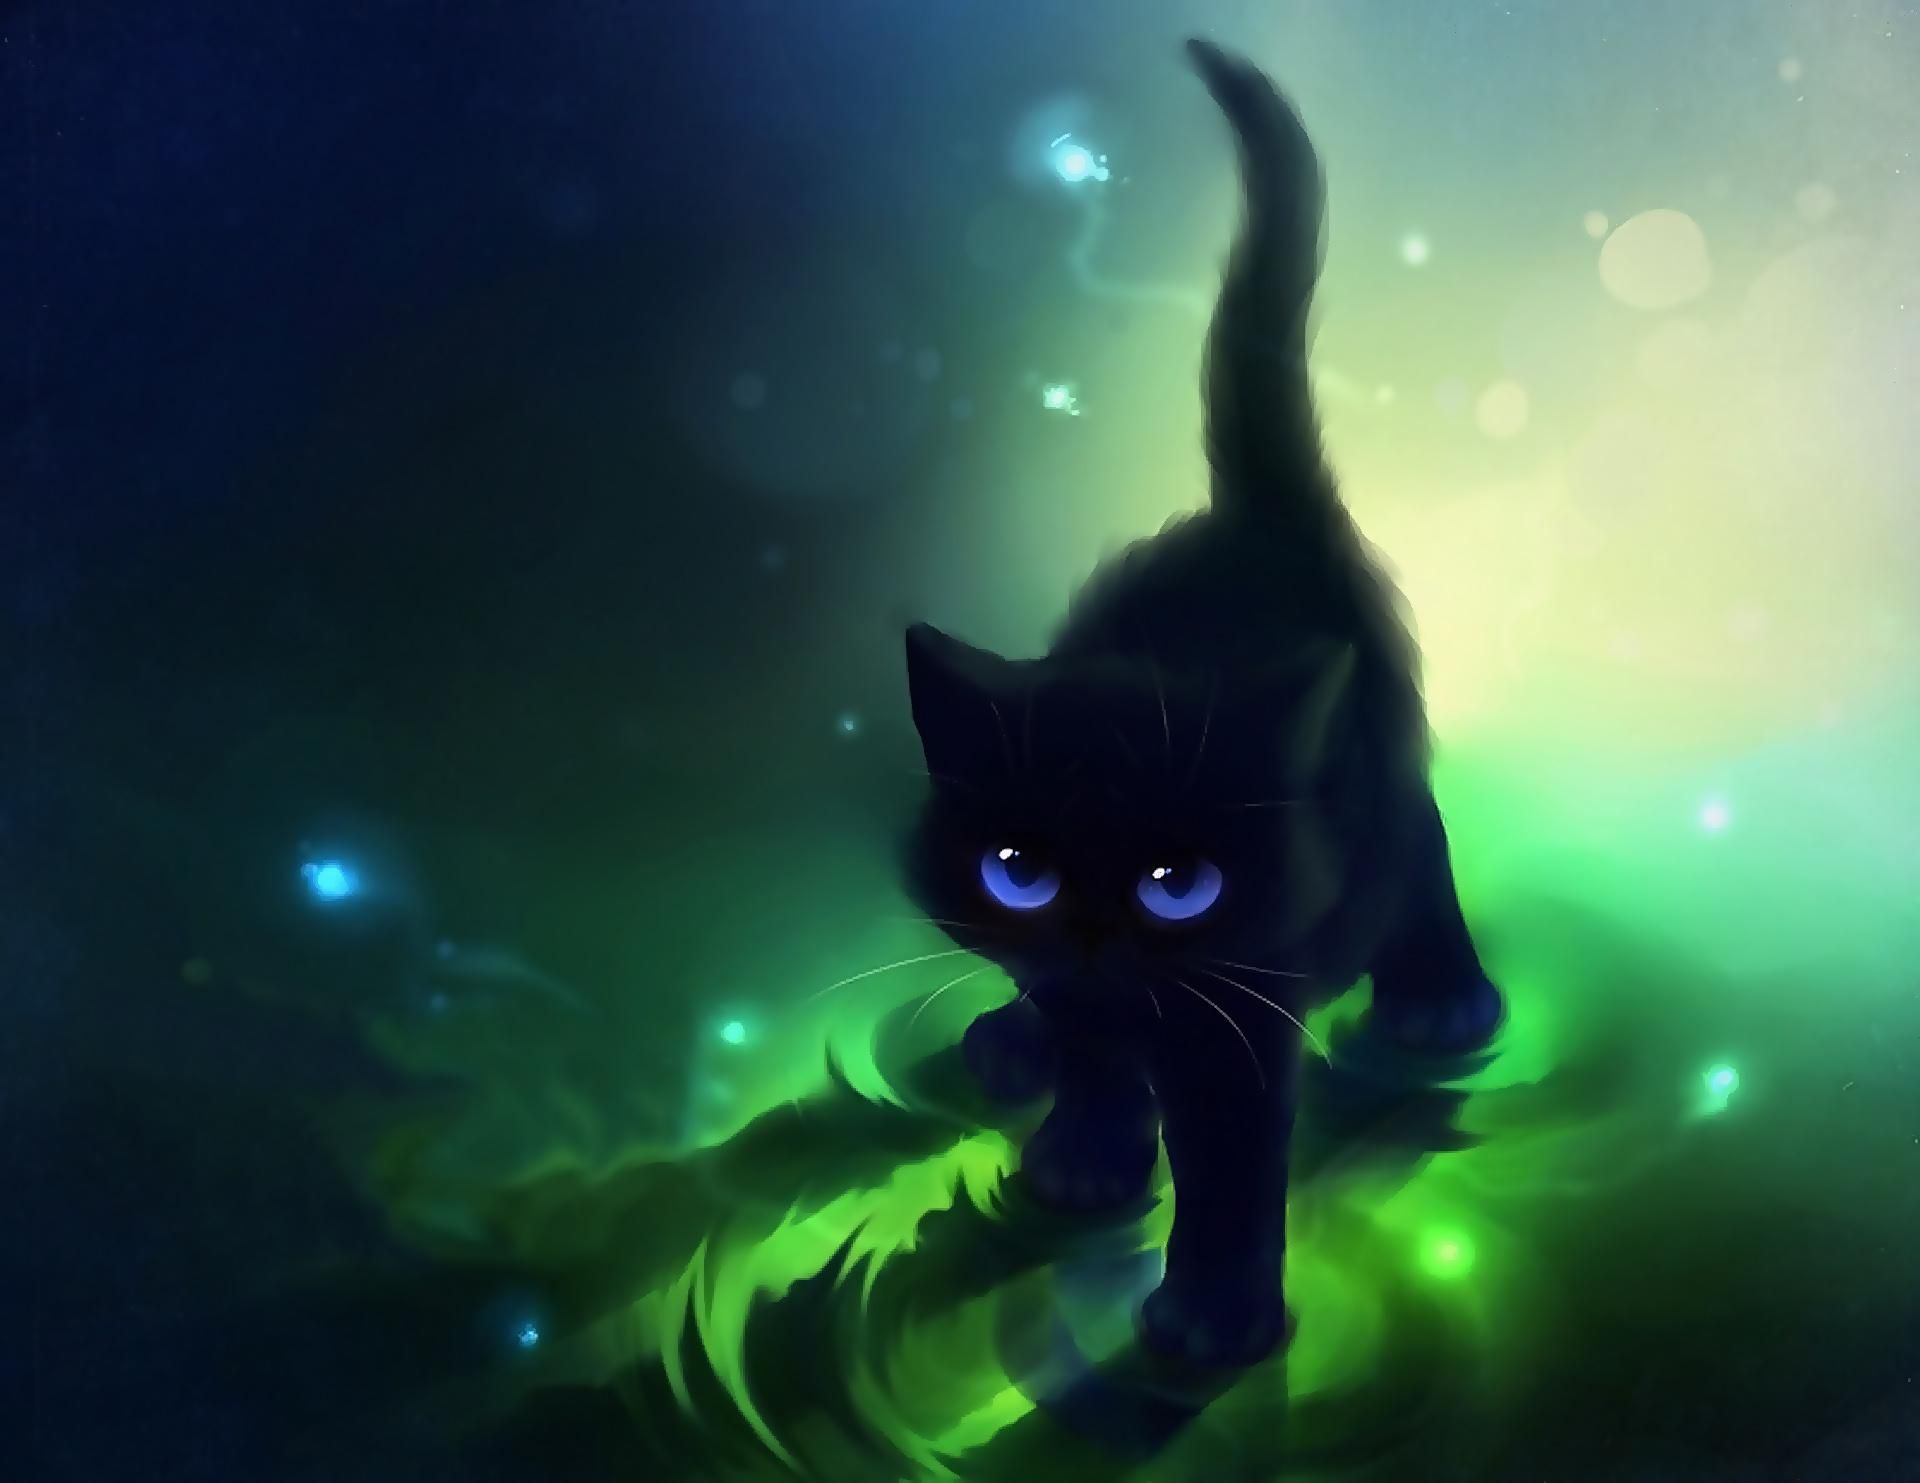 Images For Gt Cute Anime Cat Wallpapers Black Cat Anime Cute